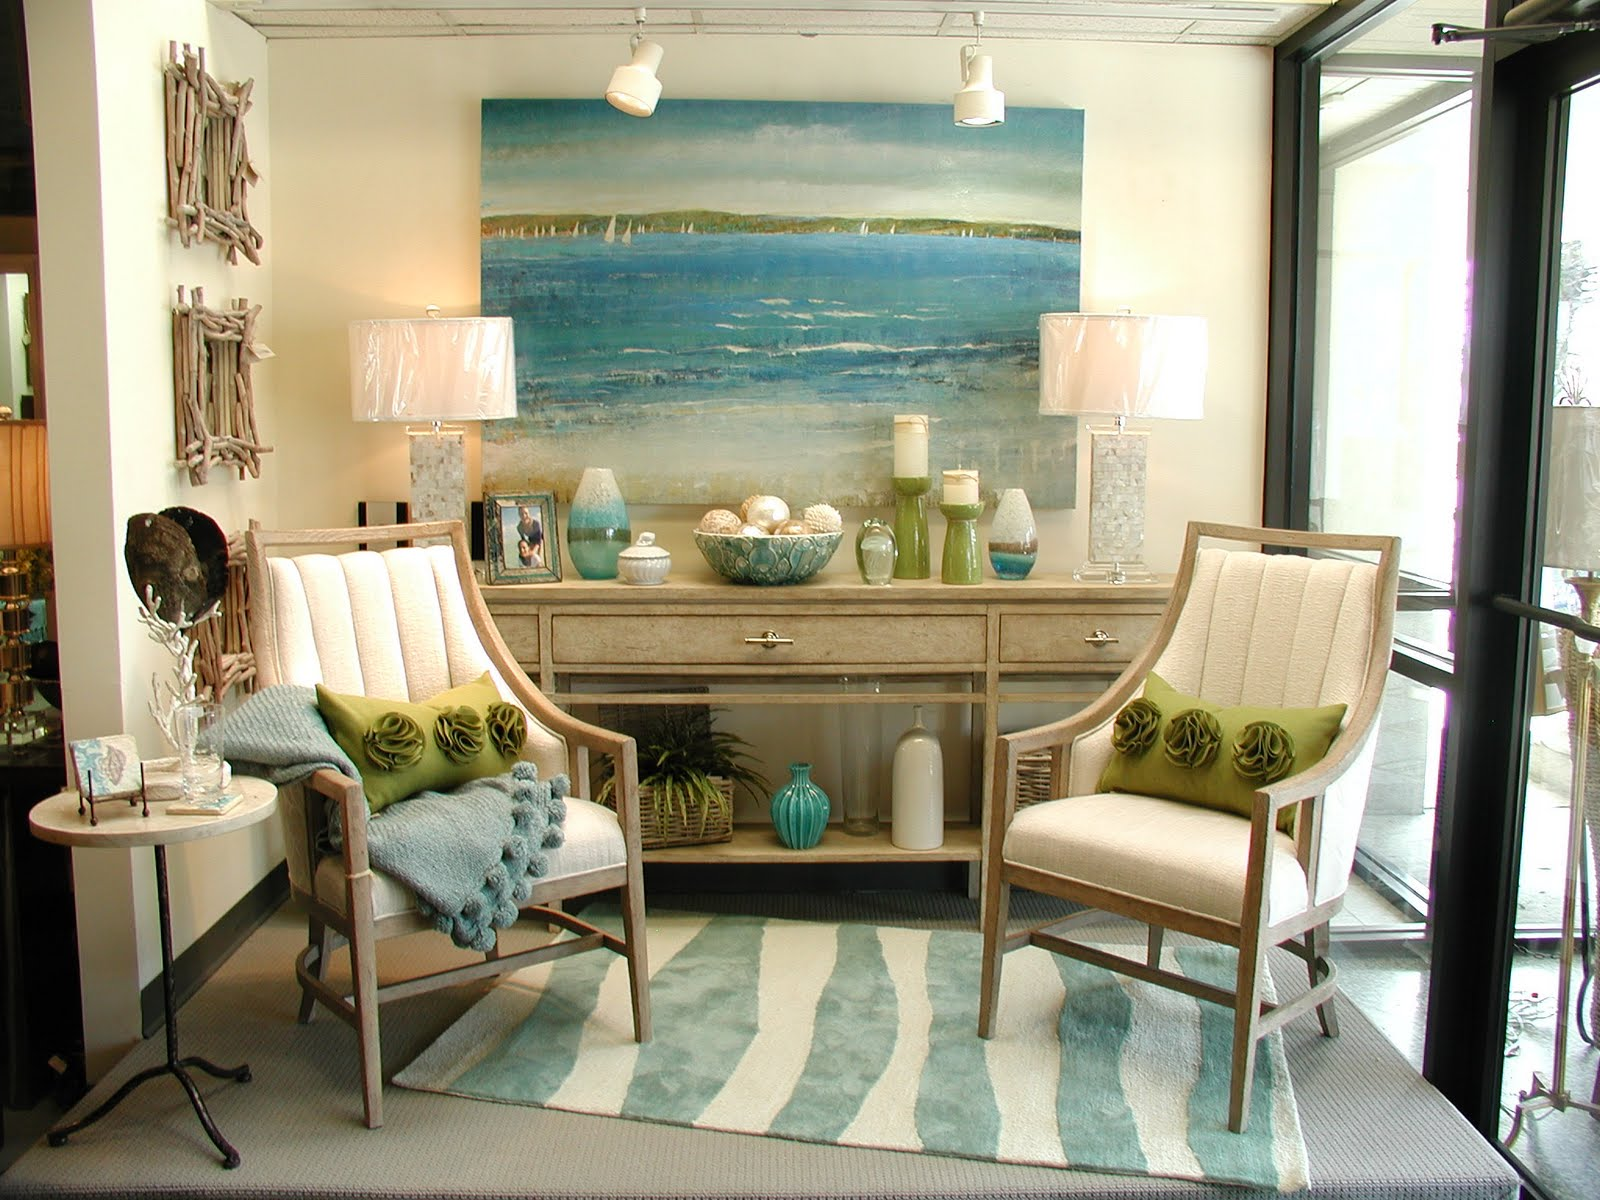 Details of design interior design in annapolis this summer for Interieur decorator